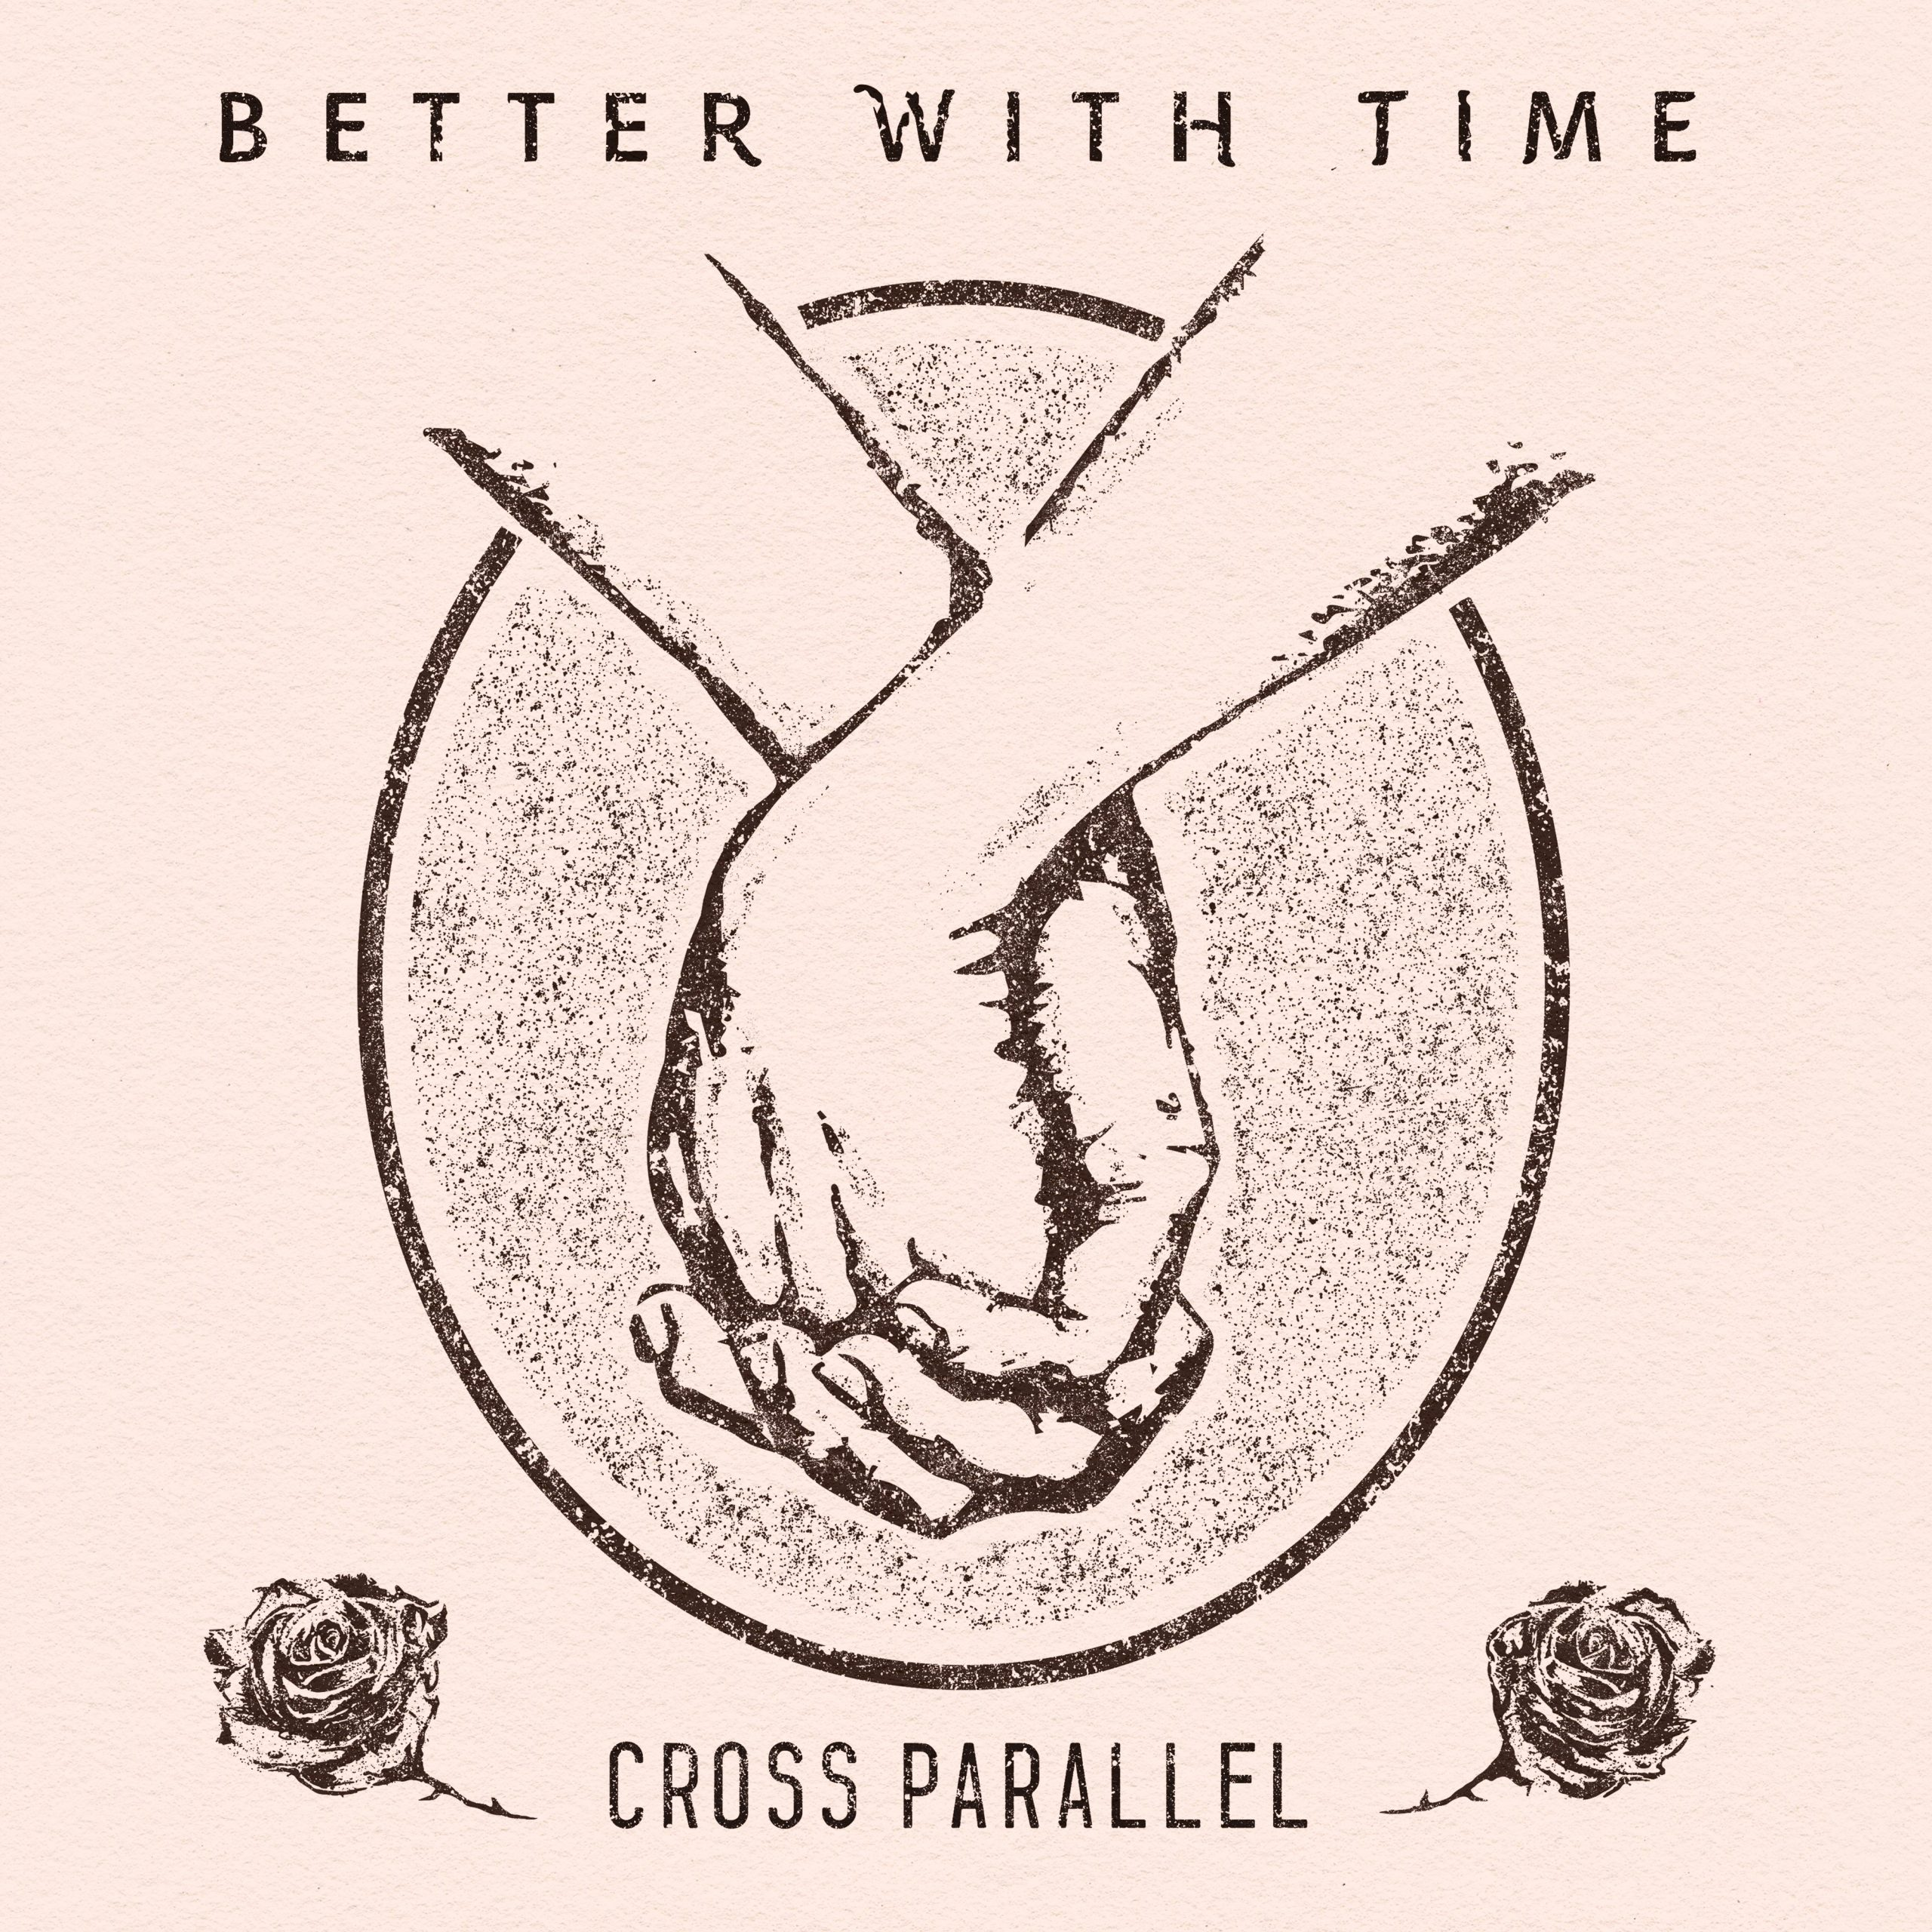 """Read more about the article Vancouver-Based Country Duo Cross Parallel Speaks About """"Better With Time"""""""